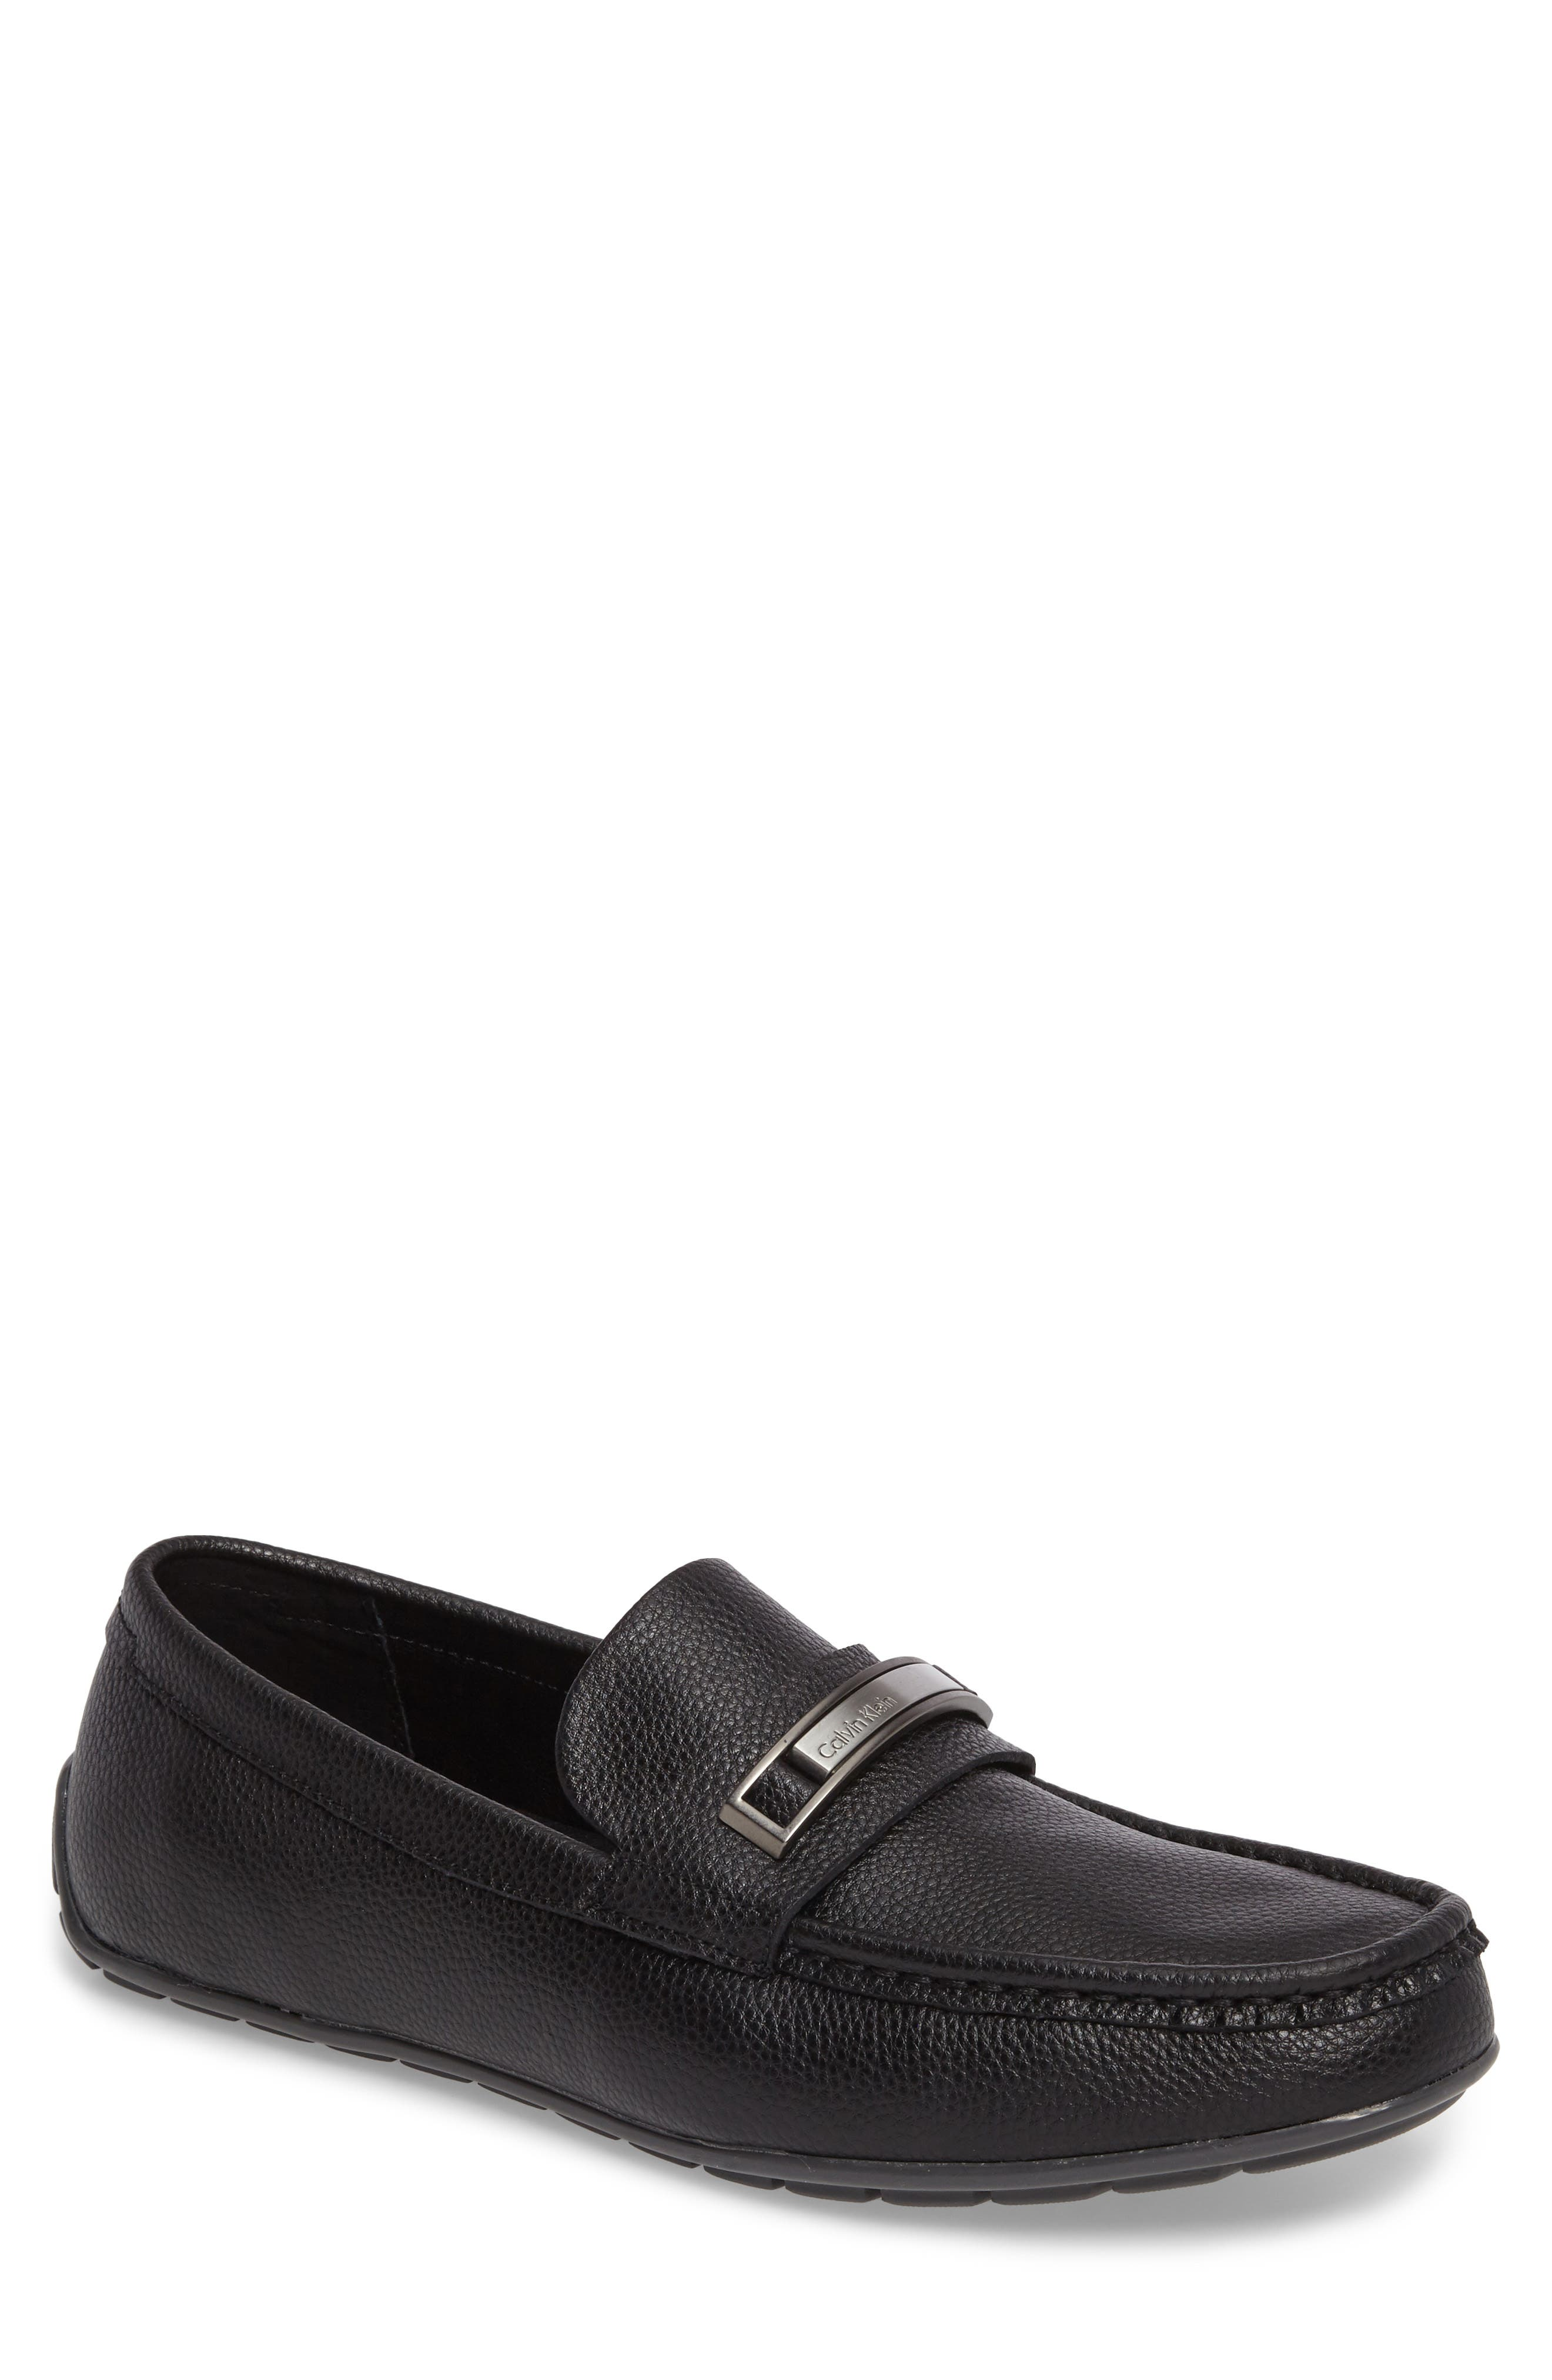 Irving Driving Loafer,                             Main thumbnail 1, color,                             Black Tumbled Leather